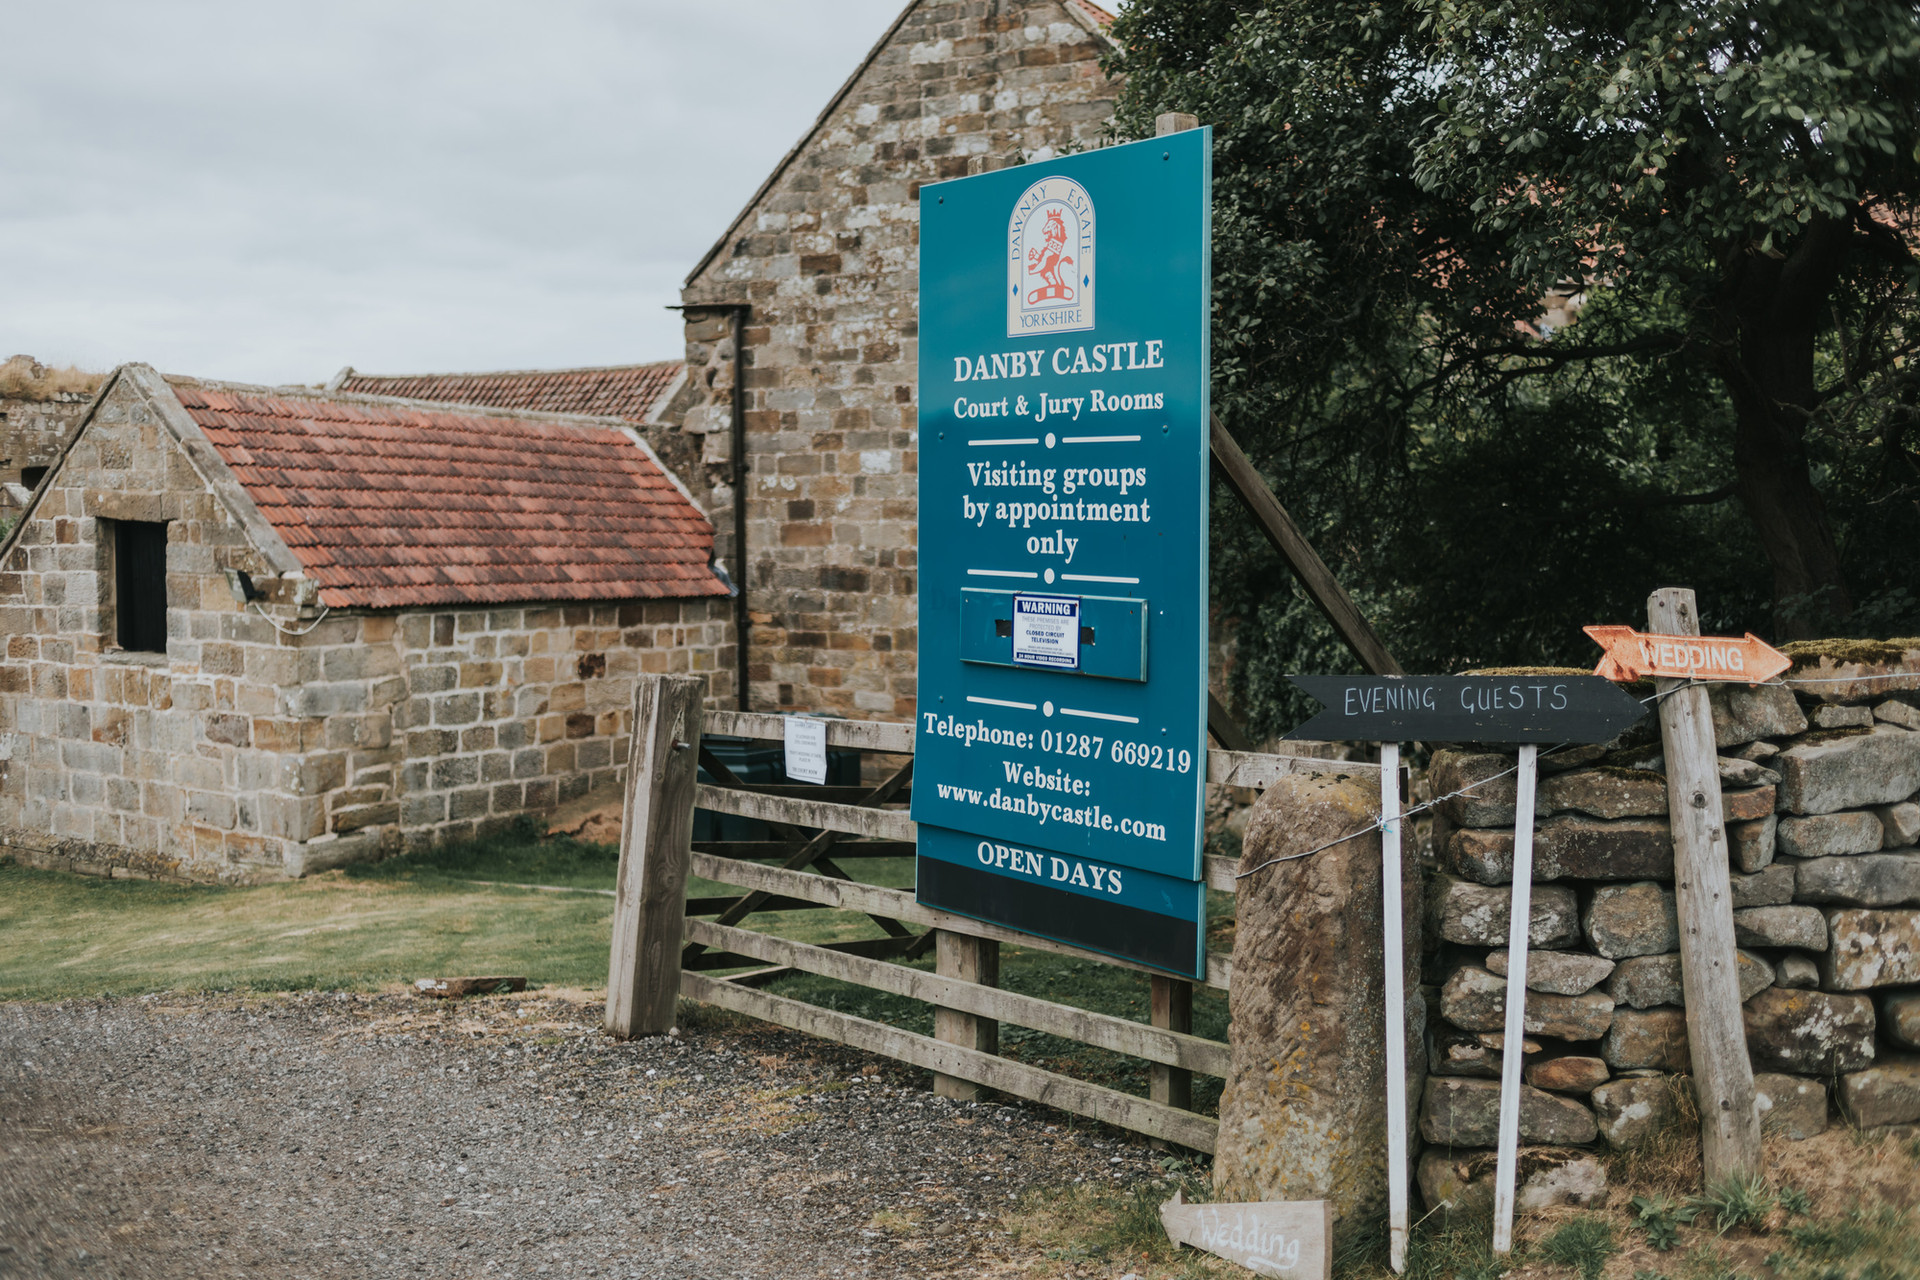 Entrance sign to Danby Castle, Whitby